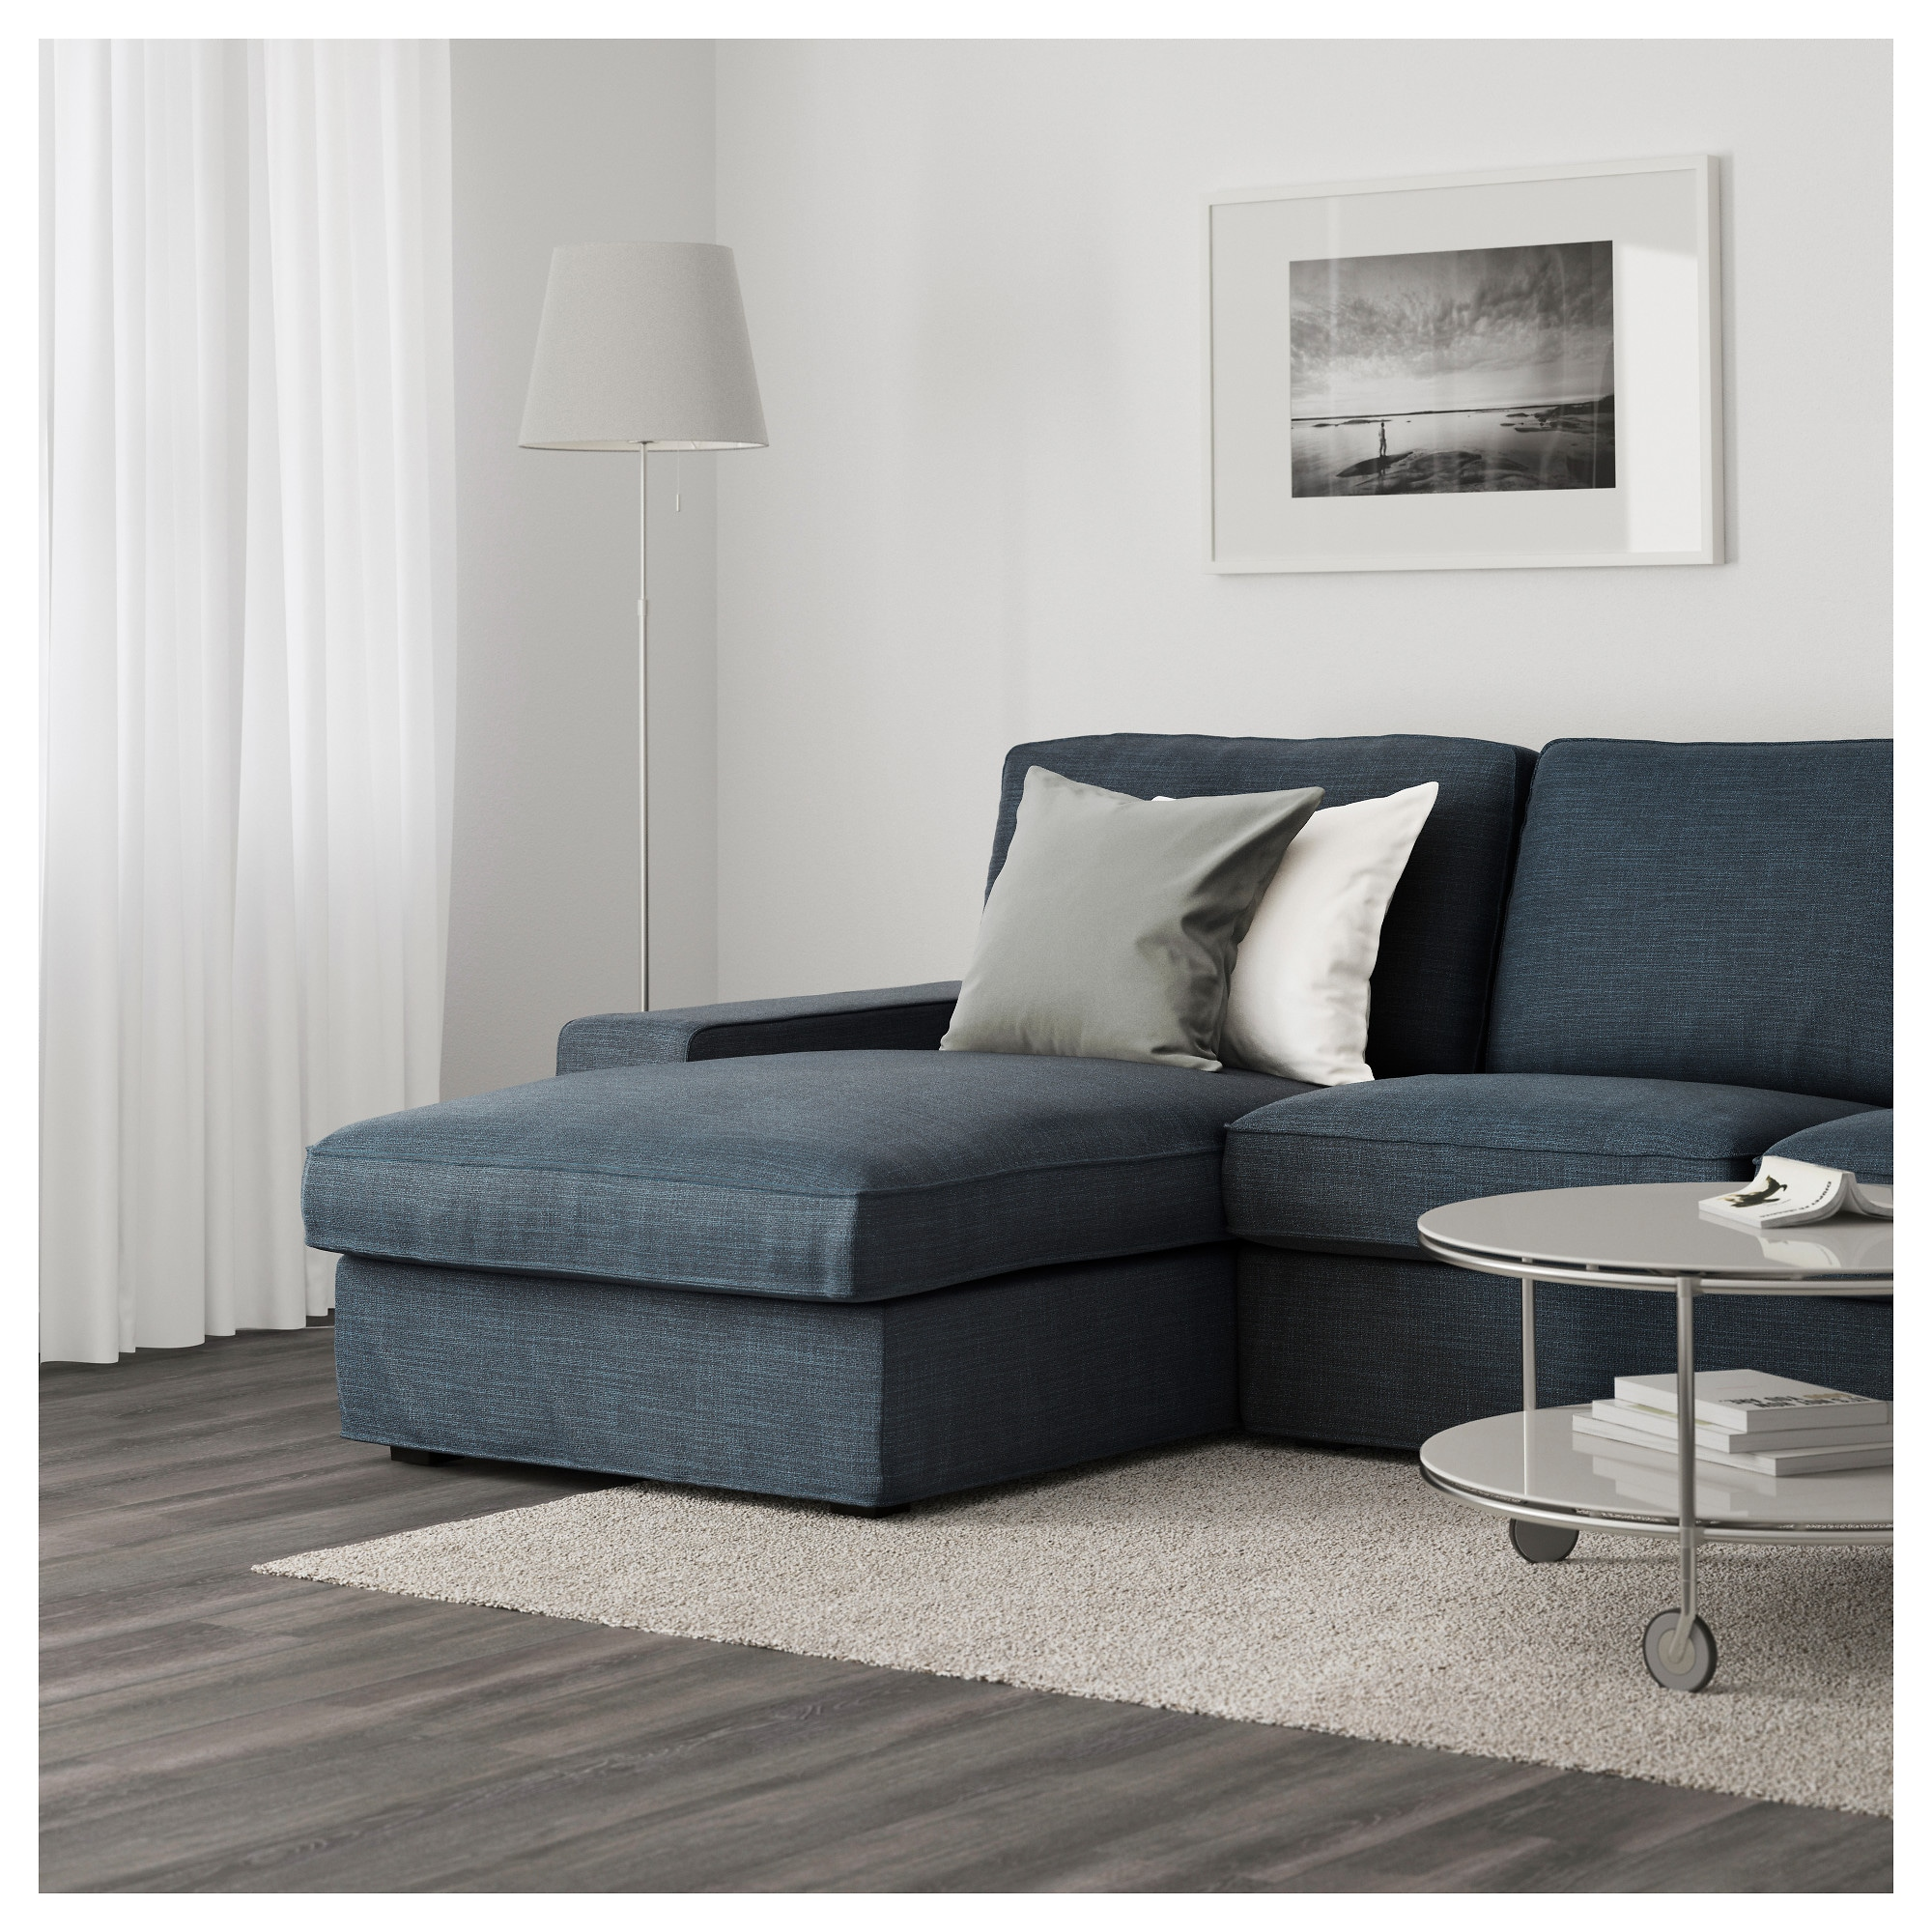 KIVIK Sofa with chaise Hillared anthracite IKEA